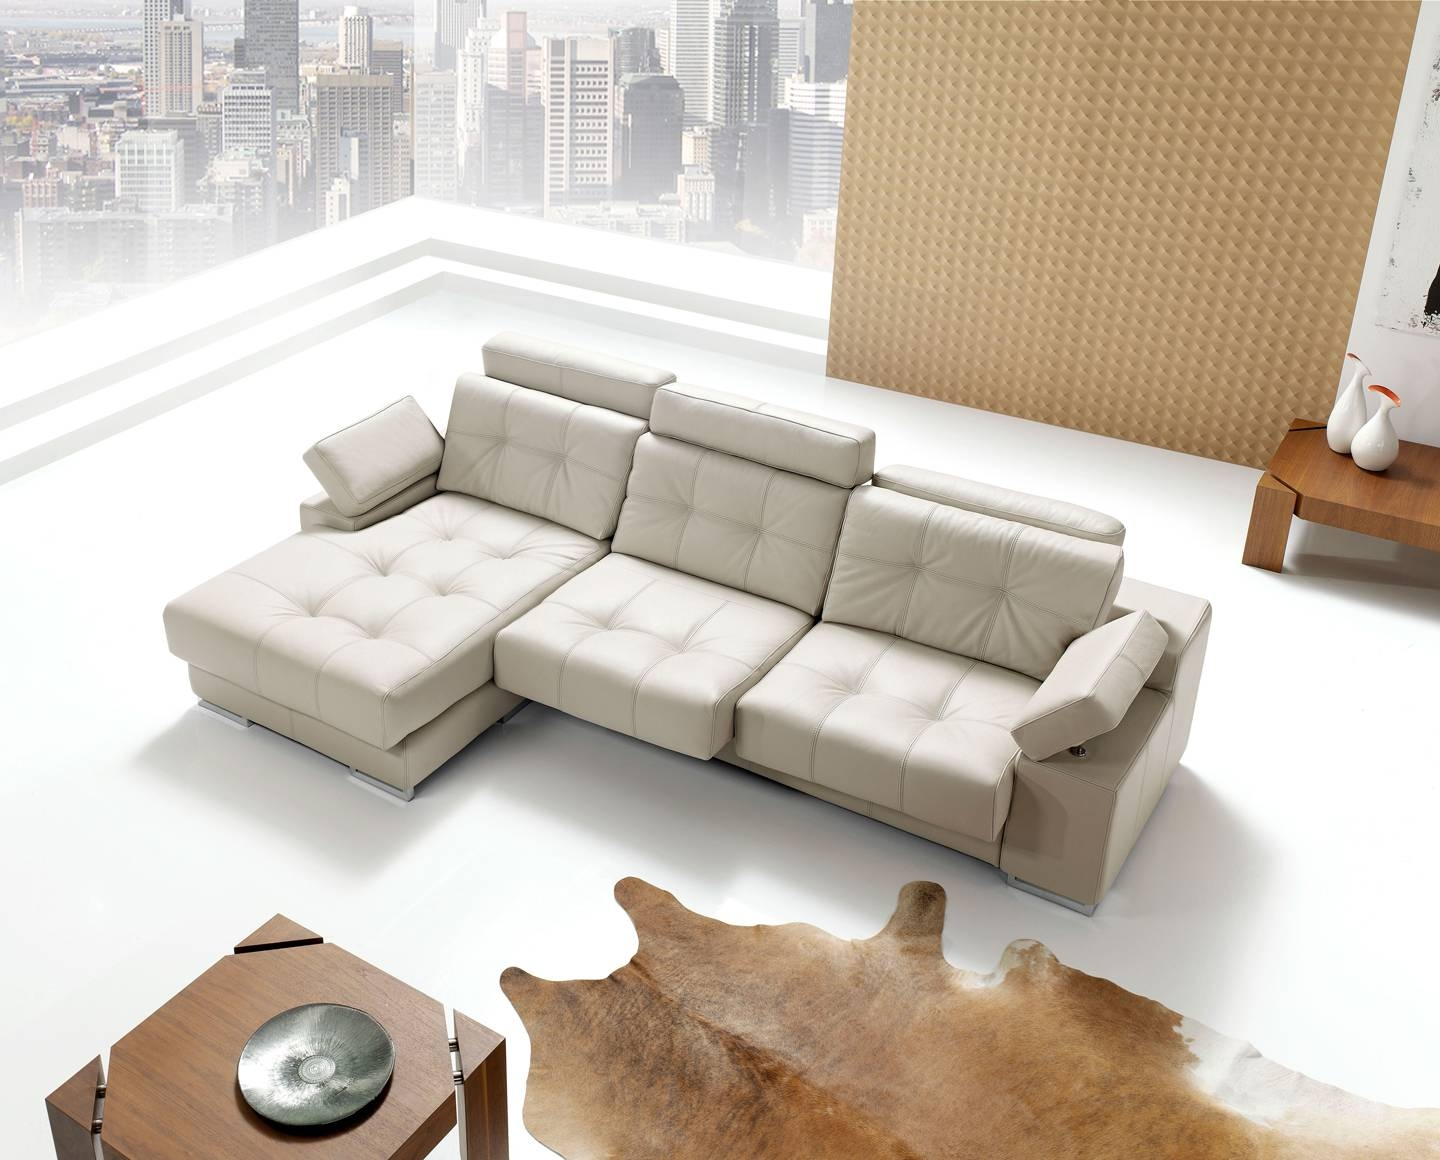 100 Genuine Italian Quality Leather Sectionals Corner Couches Throughout European Sectional Sofas (View 15 of 15)